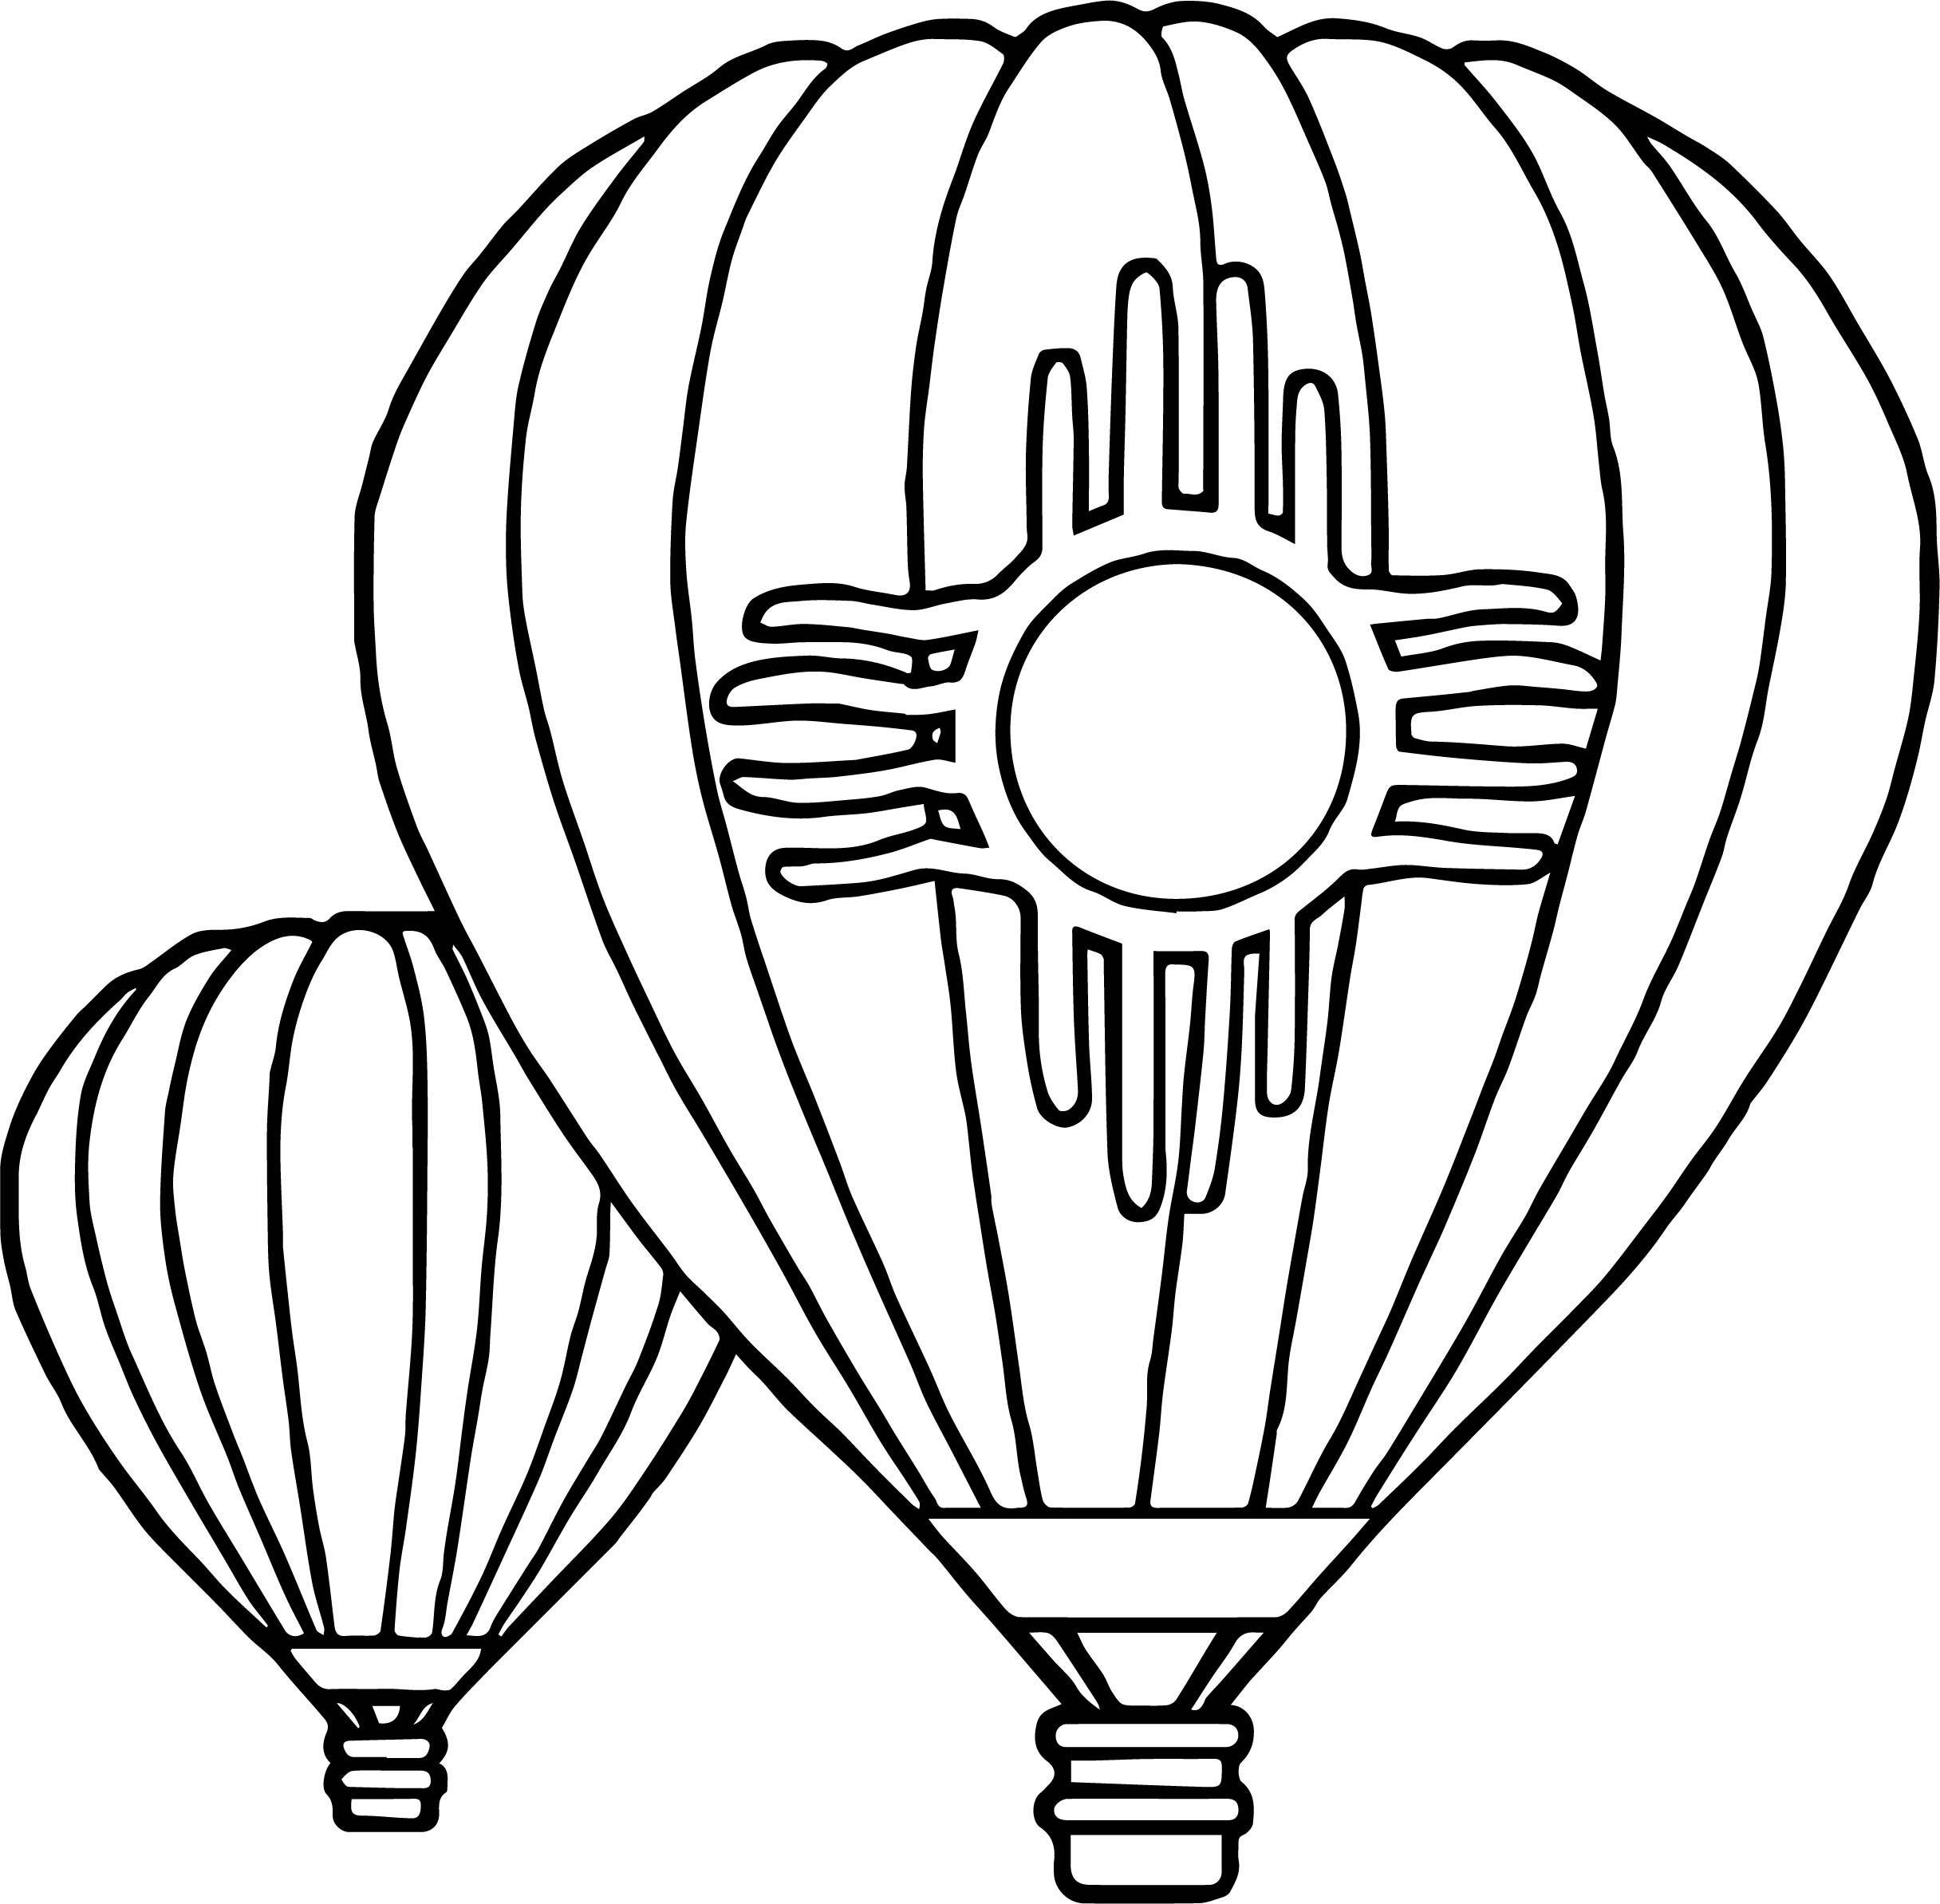 Balloon Color Page Download Free Coloring Books Download Of Fresh Hot Air Balloons Coloring Pages Collection to Print